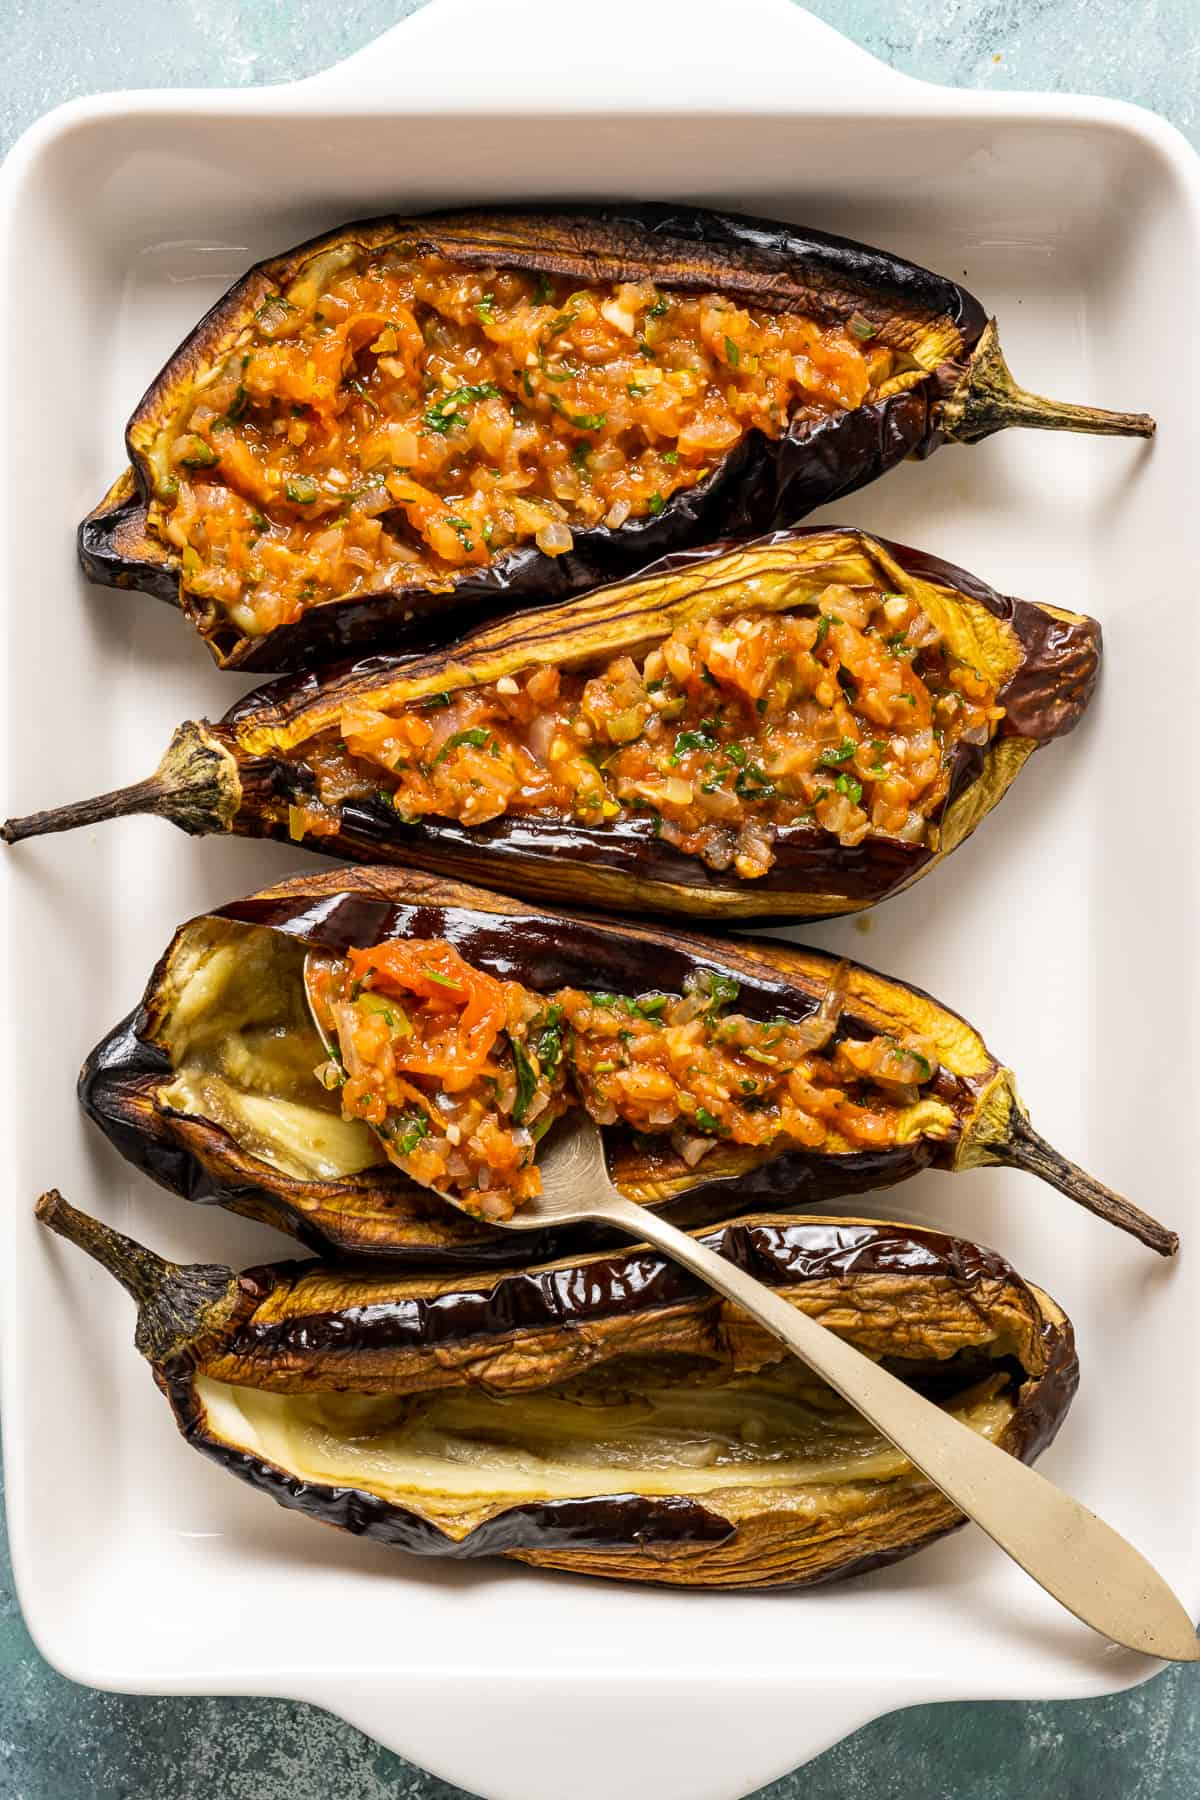 Stuffing roasted eggplants with tomato and onion filling with a spoon.